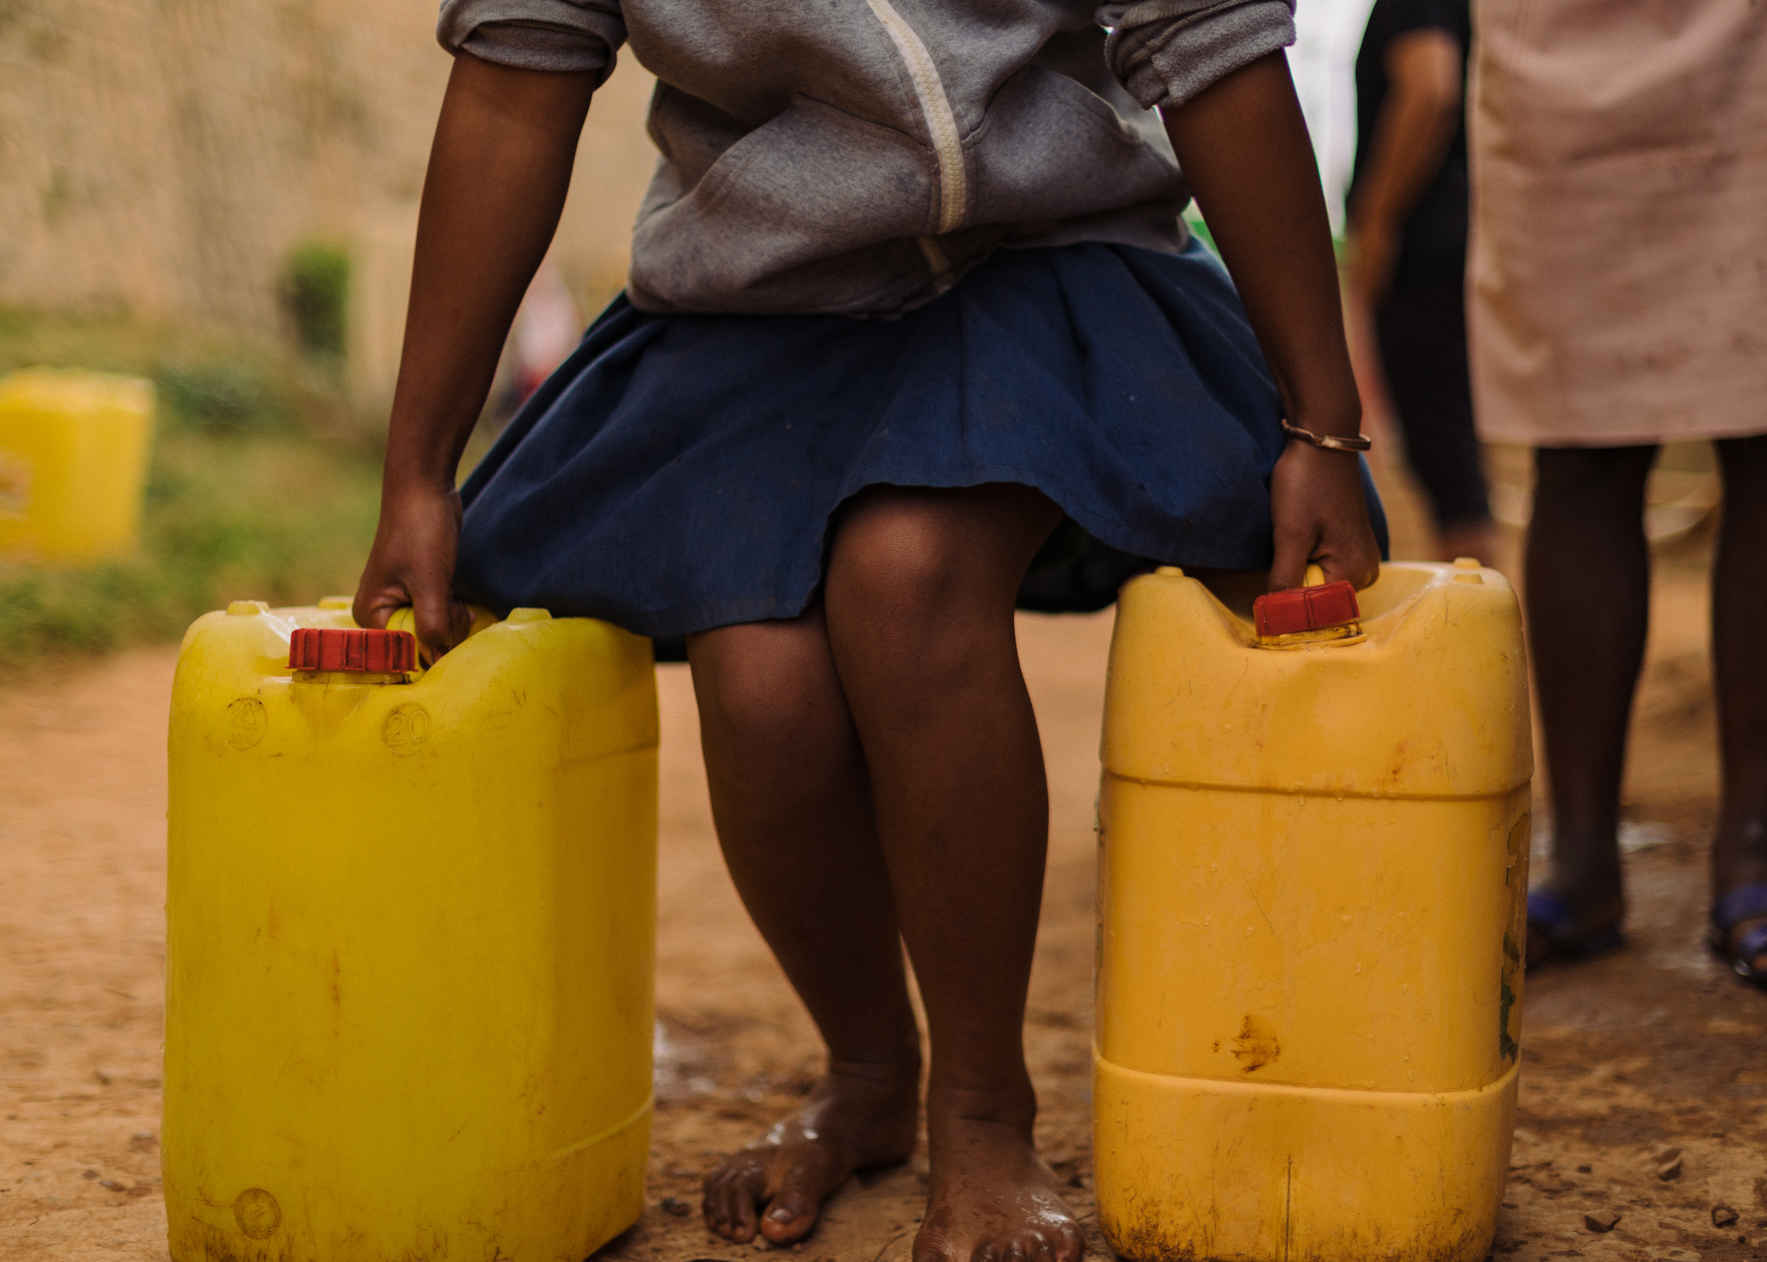 Together, let's empower women through every drop! image